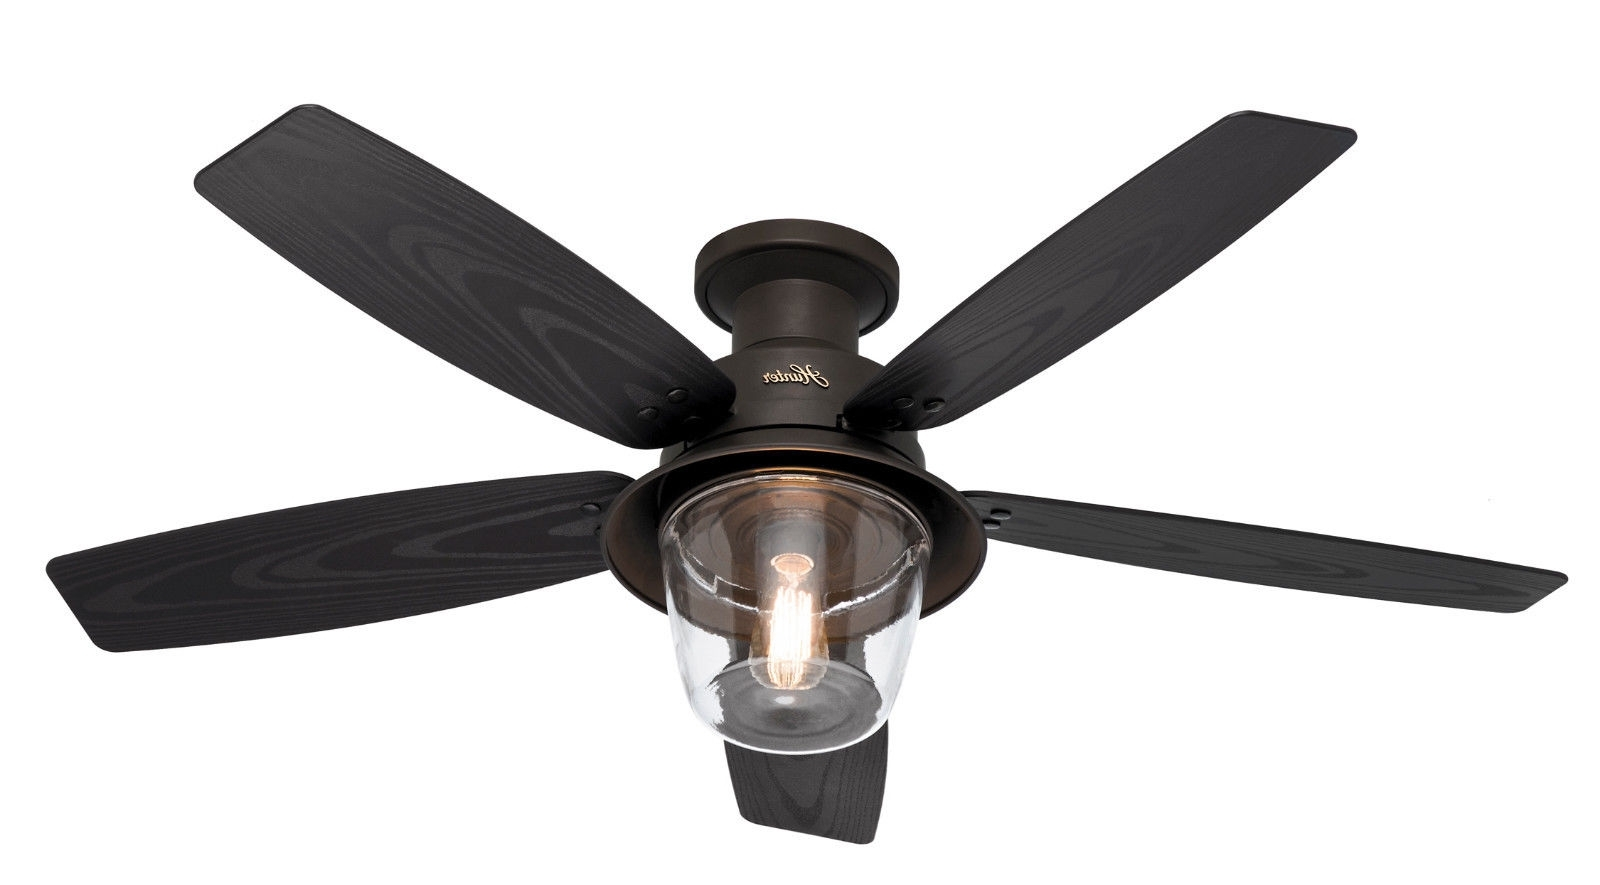 Ceiling Fan: Antique Rustic Ceiling Fans Design Farmhouse Ceiling Regarding Most Recent Outdoor Windmill Ceiling Fans With Light (View 1 of 20)